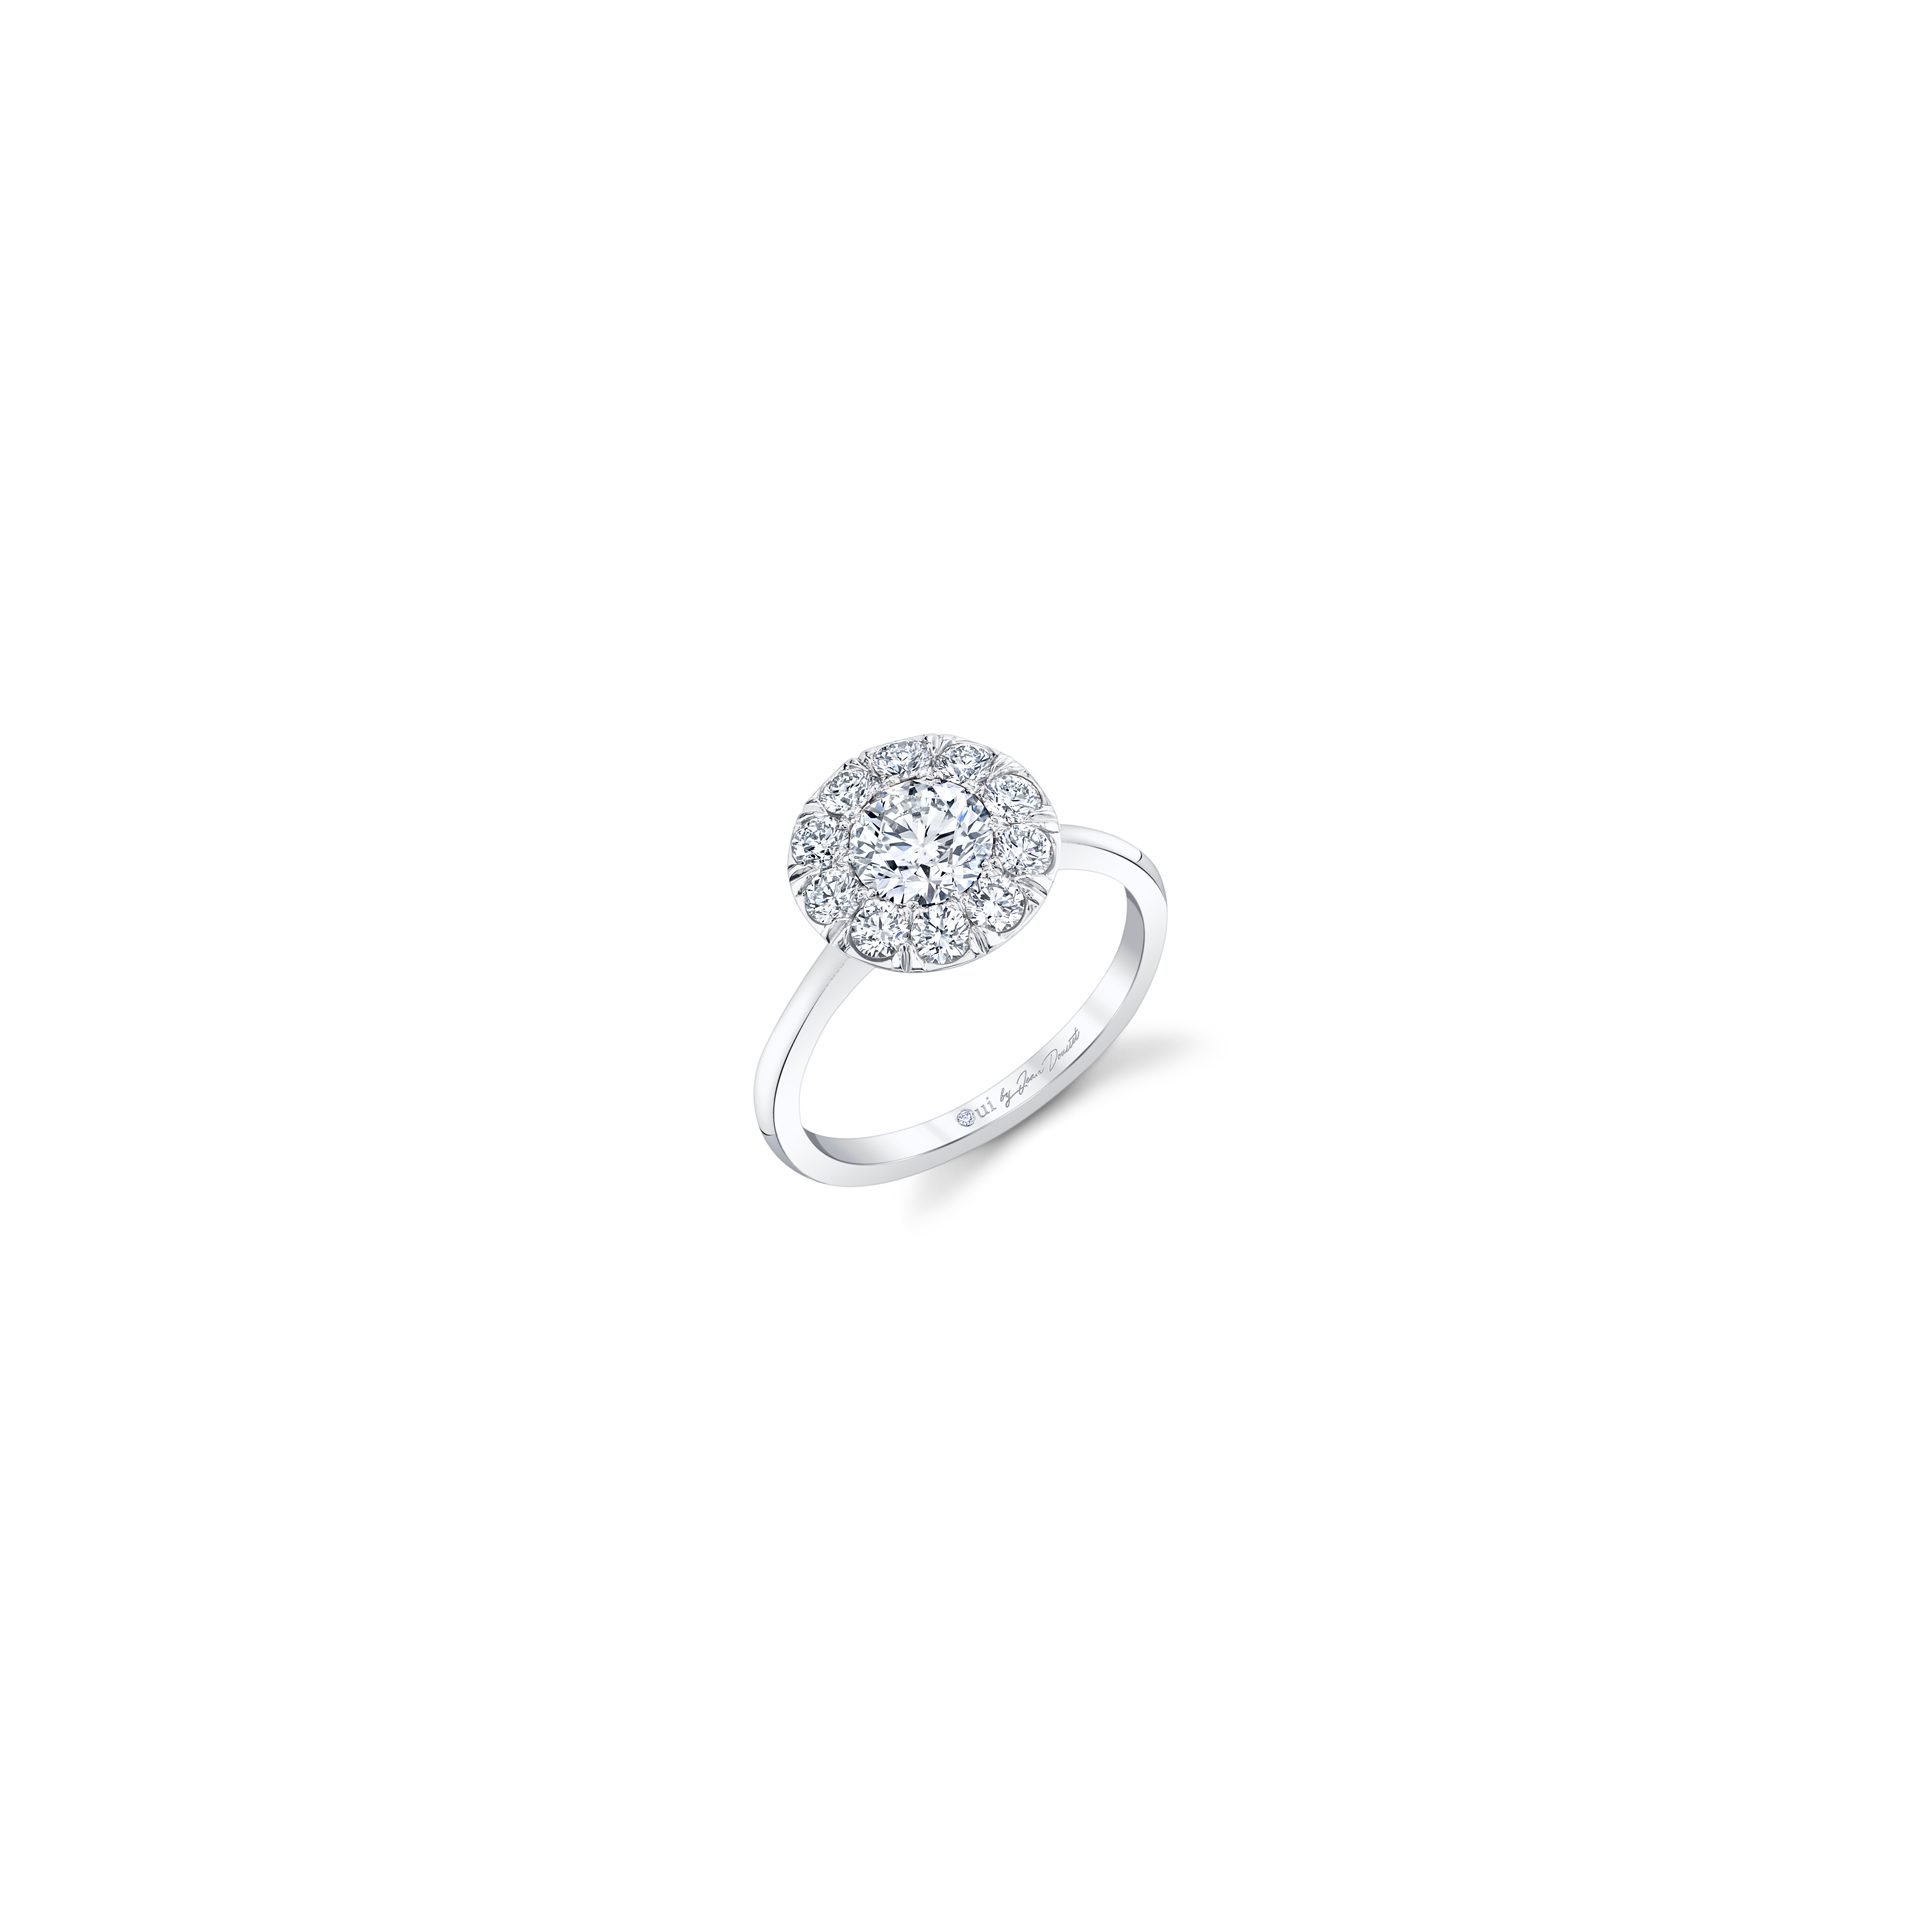 Colette Floating Round Brilliant Seamless Solitaire® Engagement Ring with a sold band in 18k White Gold Front View by Oui by Jean Dousset